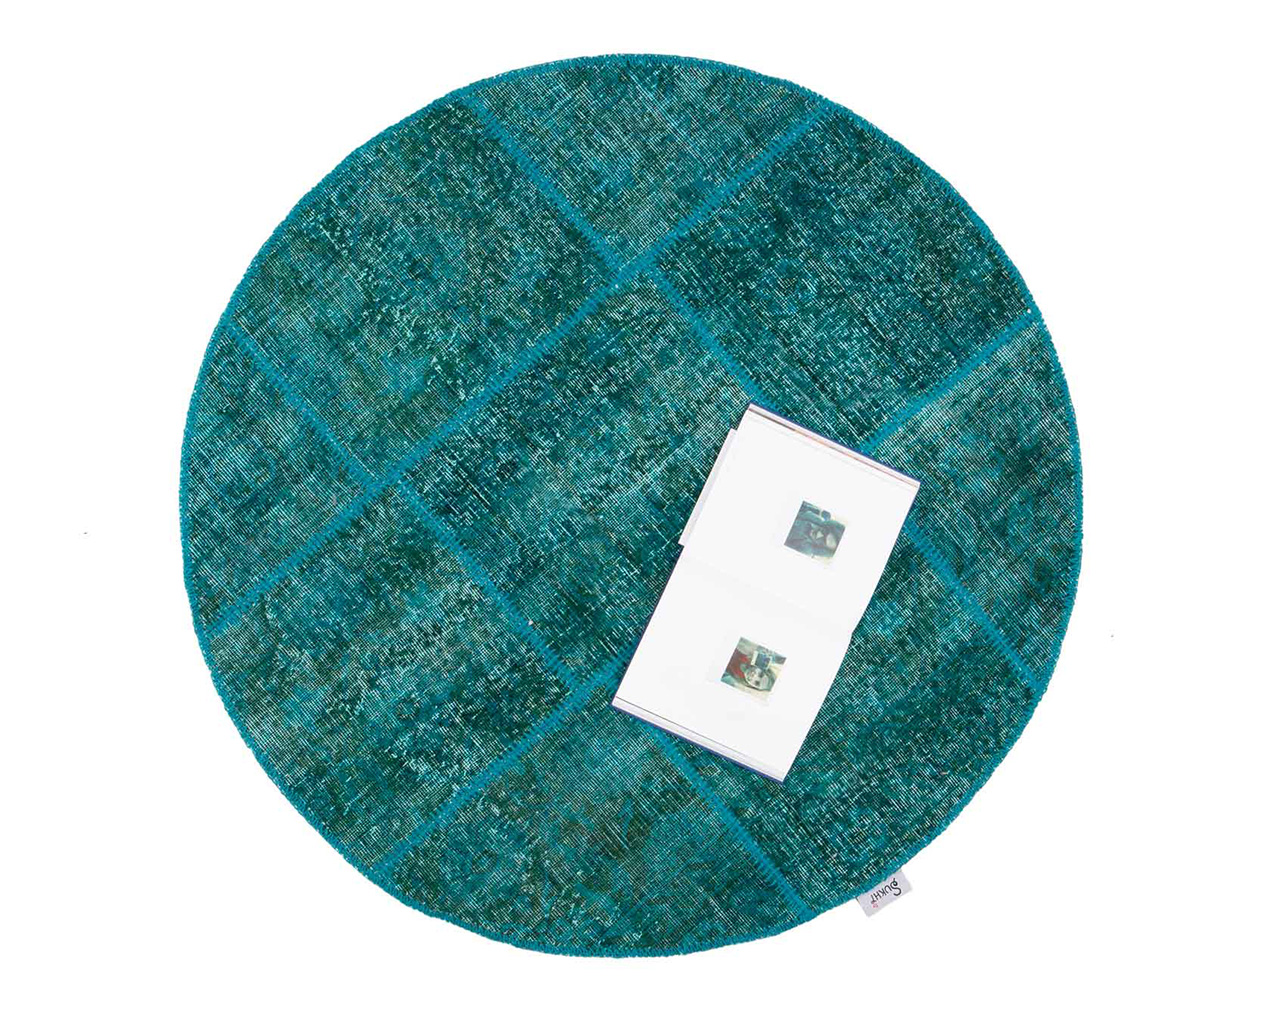 play area hand knitted area rugs